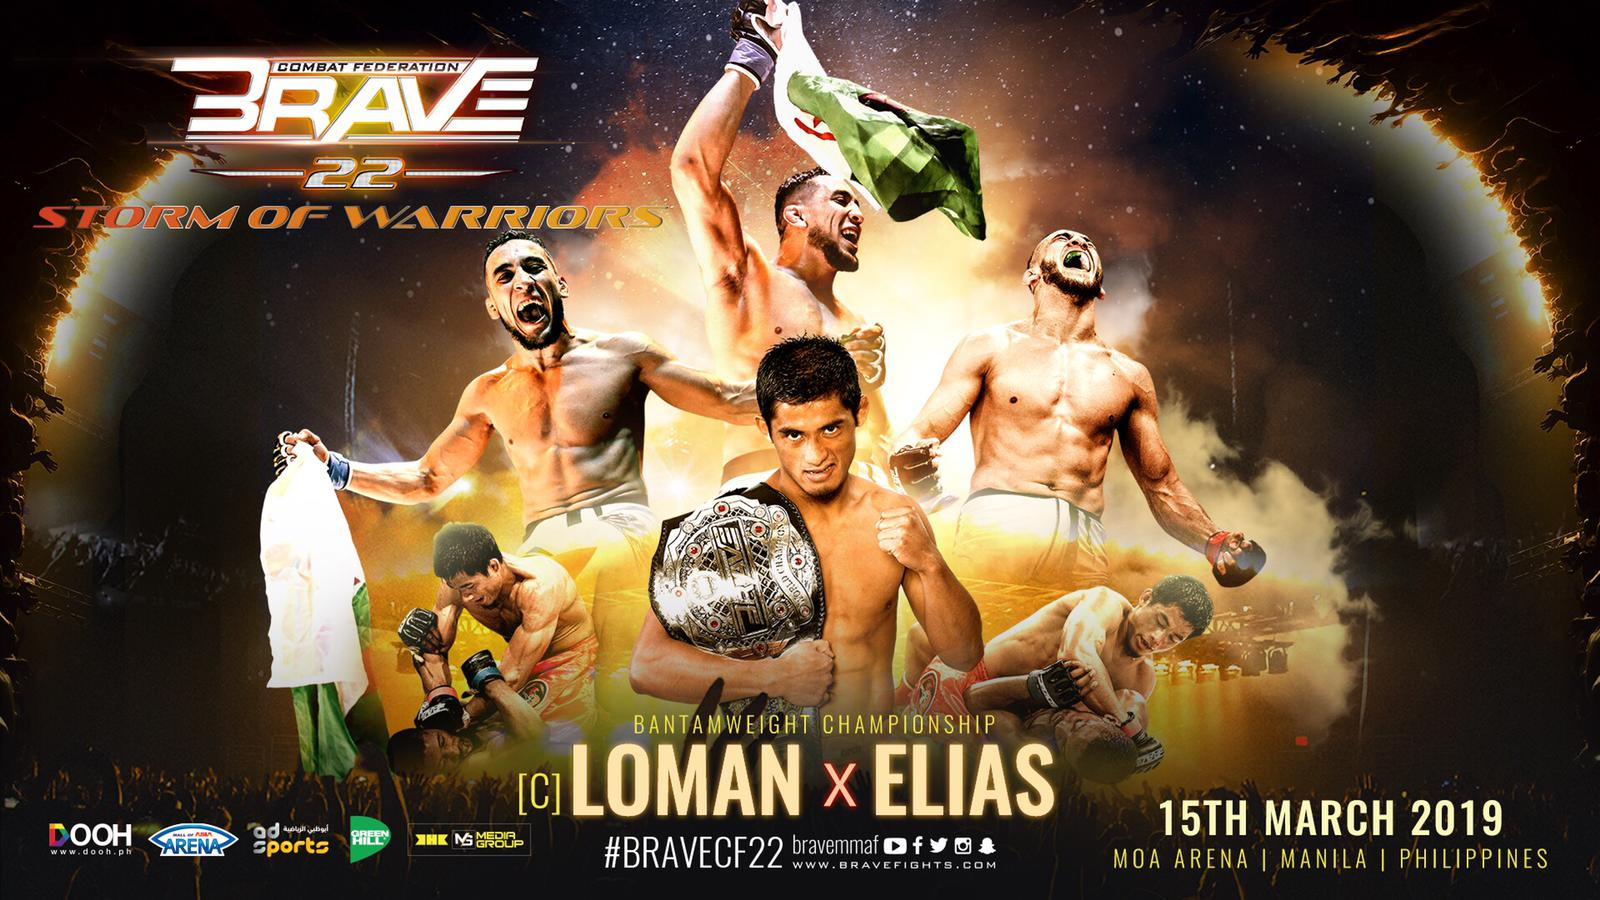 Full fight card released for Brave's debut in the Philippines -